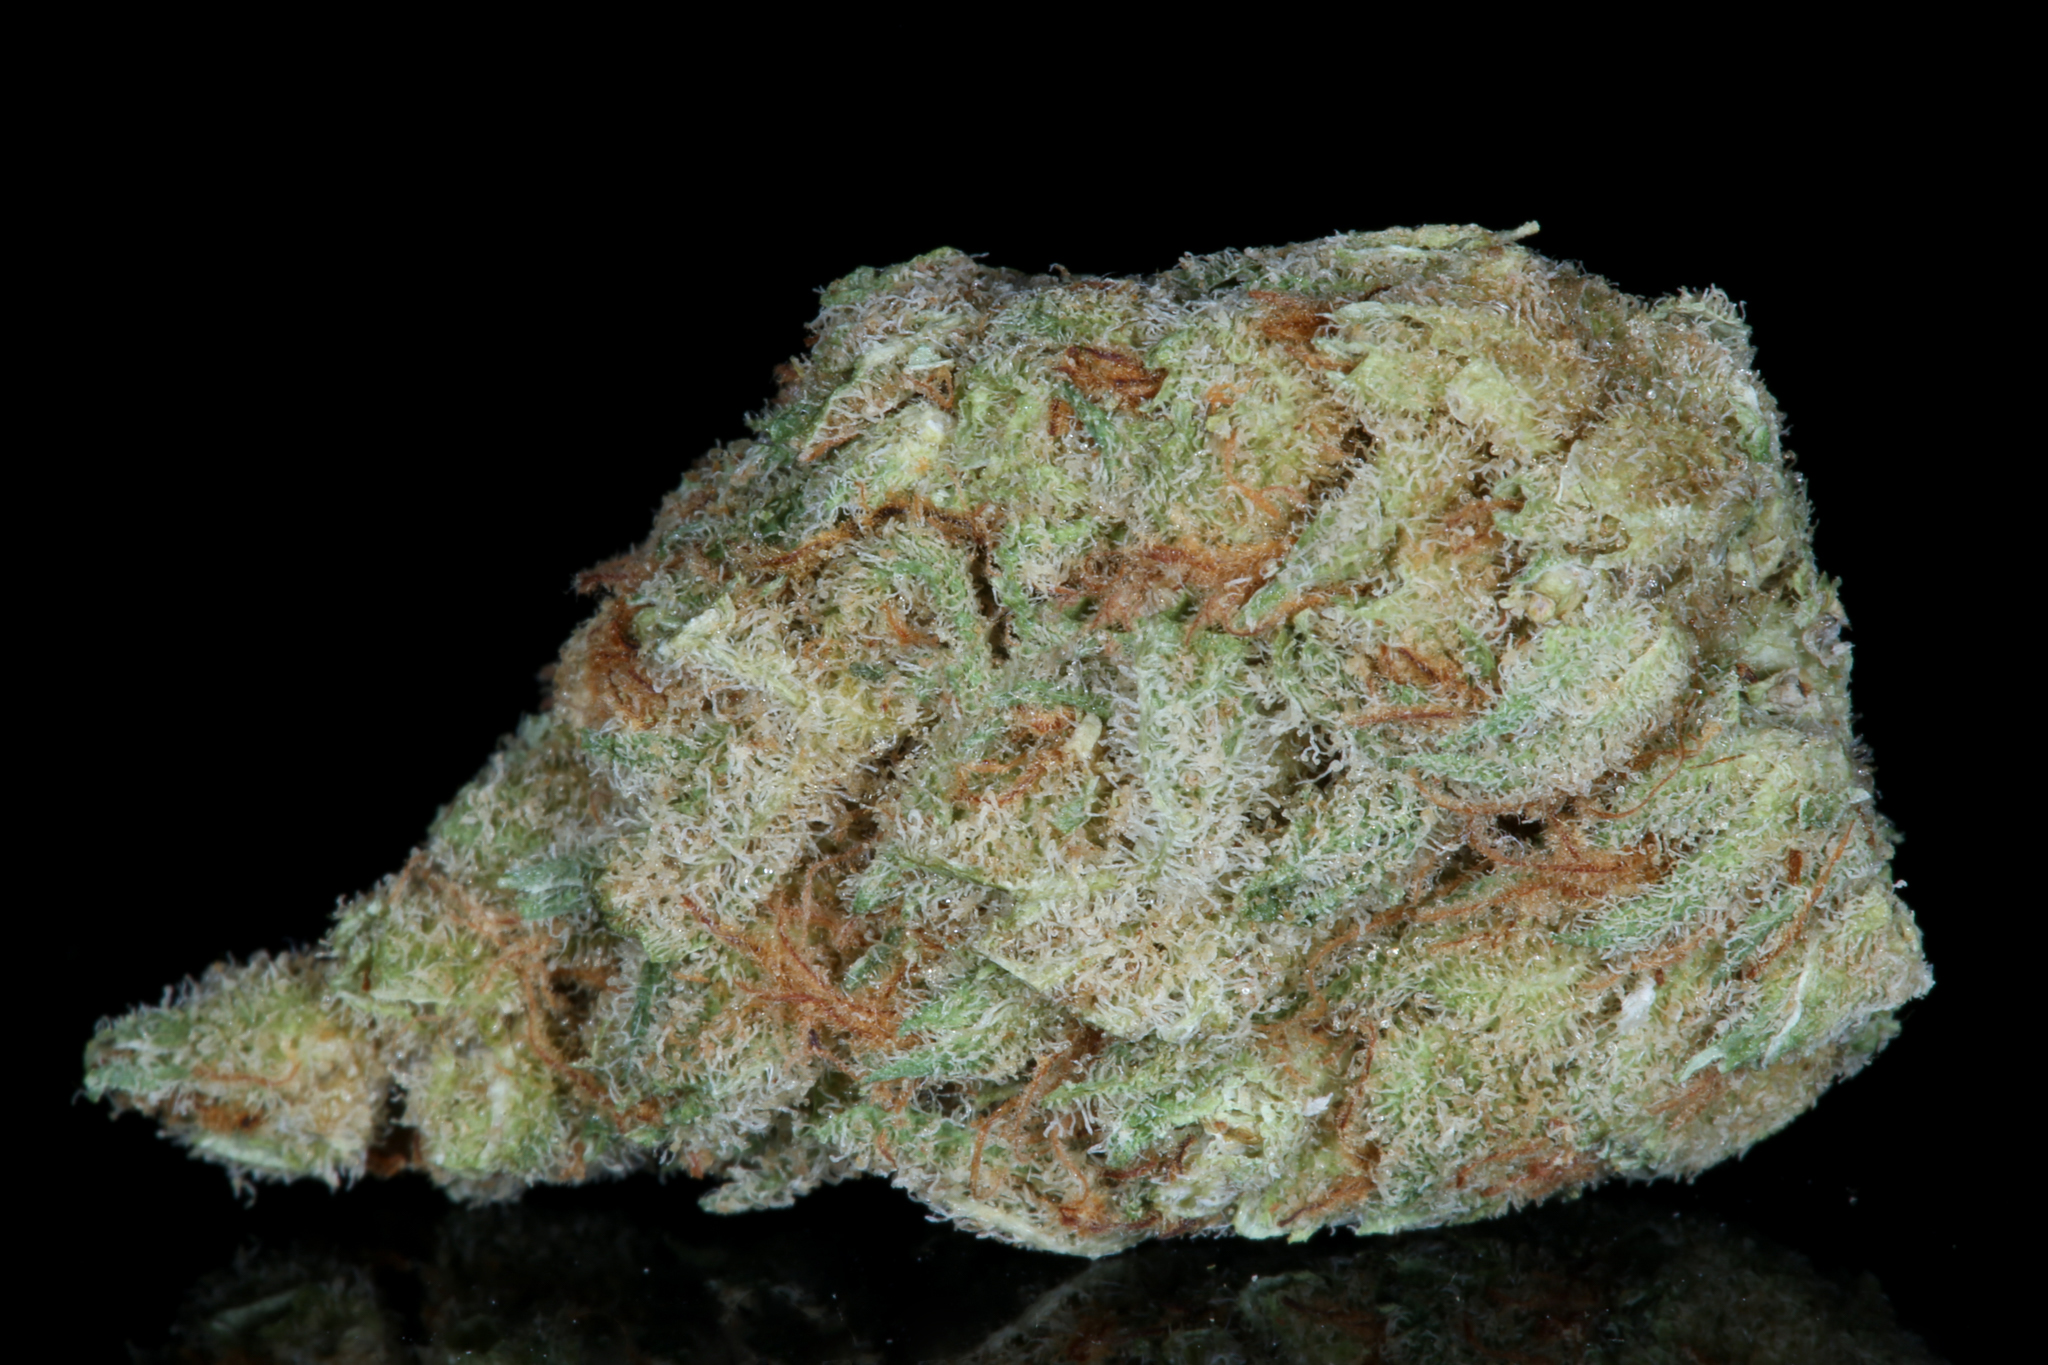 Slymer-weed-strain-matrix-tga-genetics-chernobyl-nevada-matrix-best-weed-ever-Dried-4702